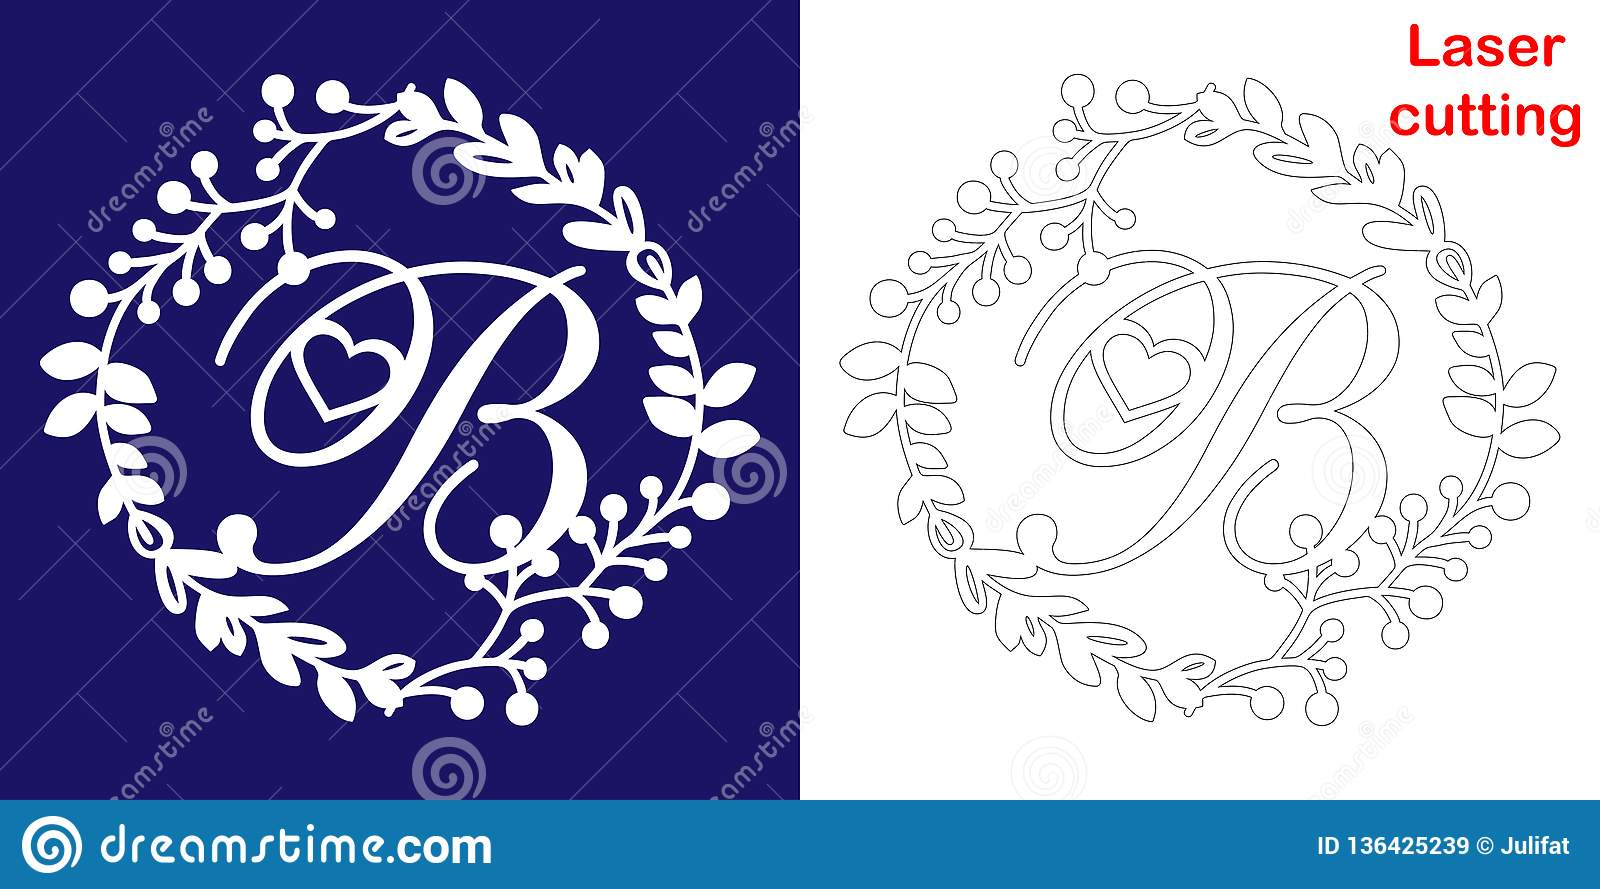 Wedding Monogram For Laser Cutting Letter B Of The Wedding